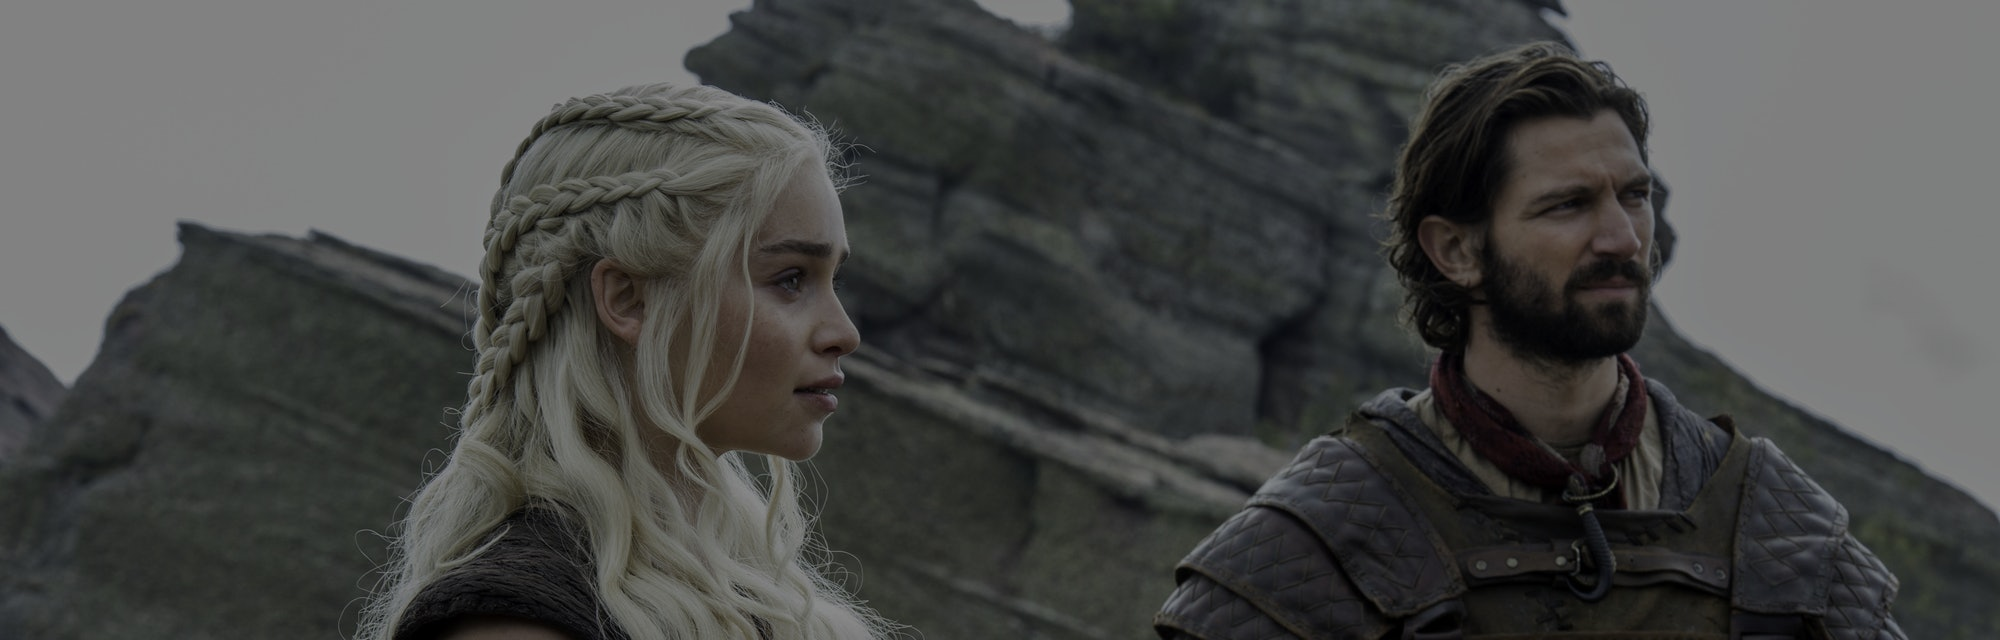 Game Of Thrones Season 6 Will Host Another Red Wedding